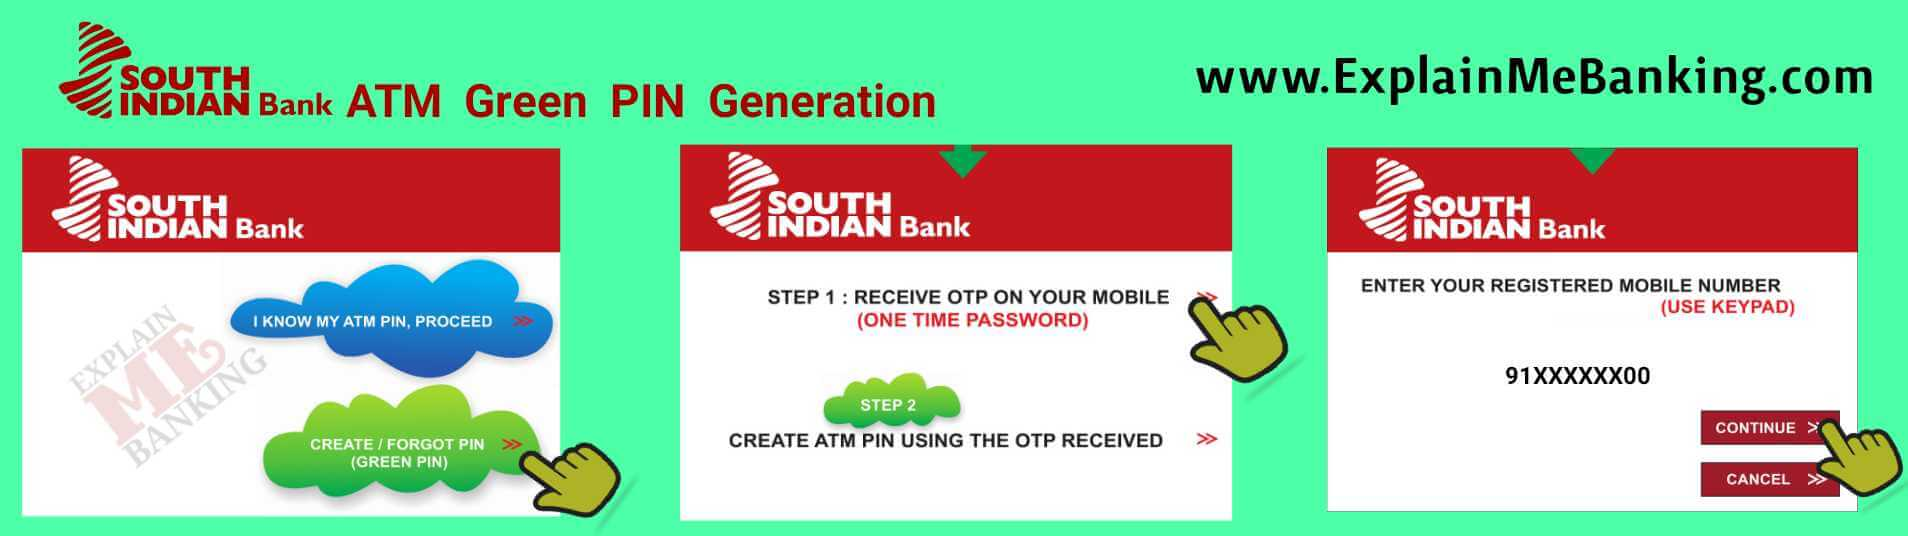 South Indian bank ATM Green PIN Generation